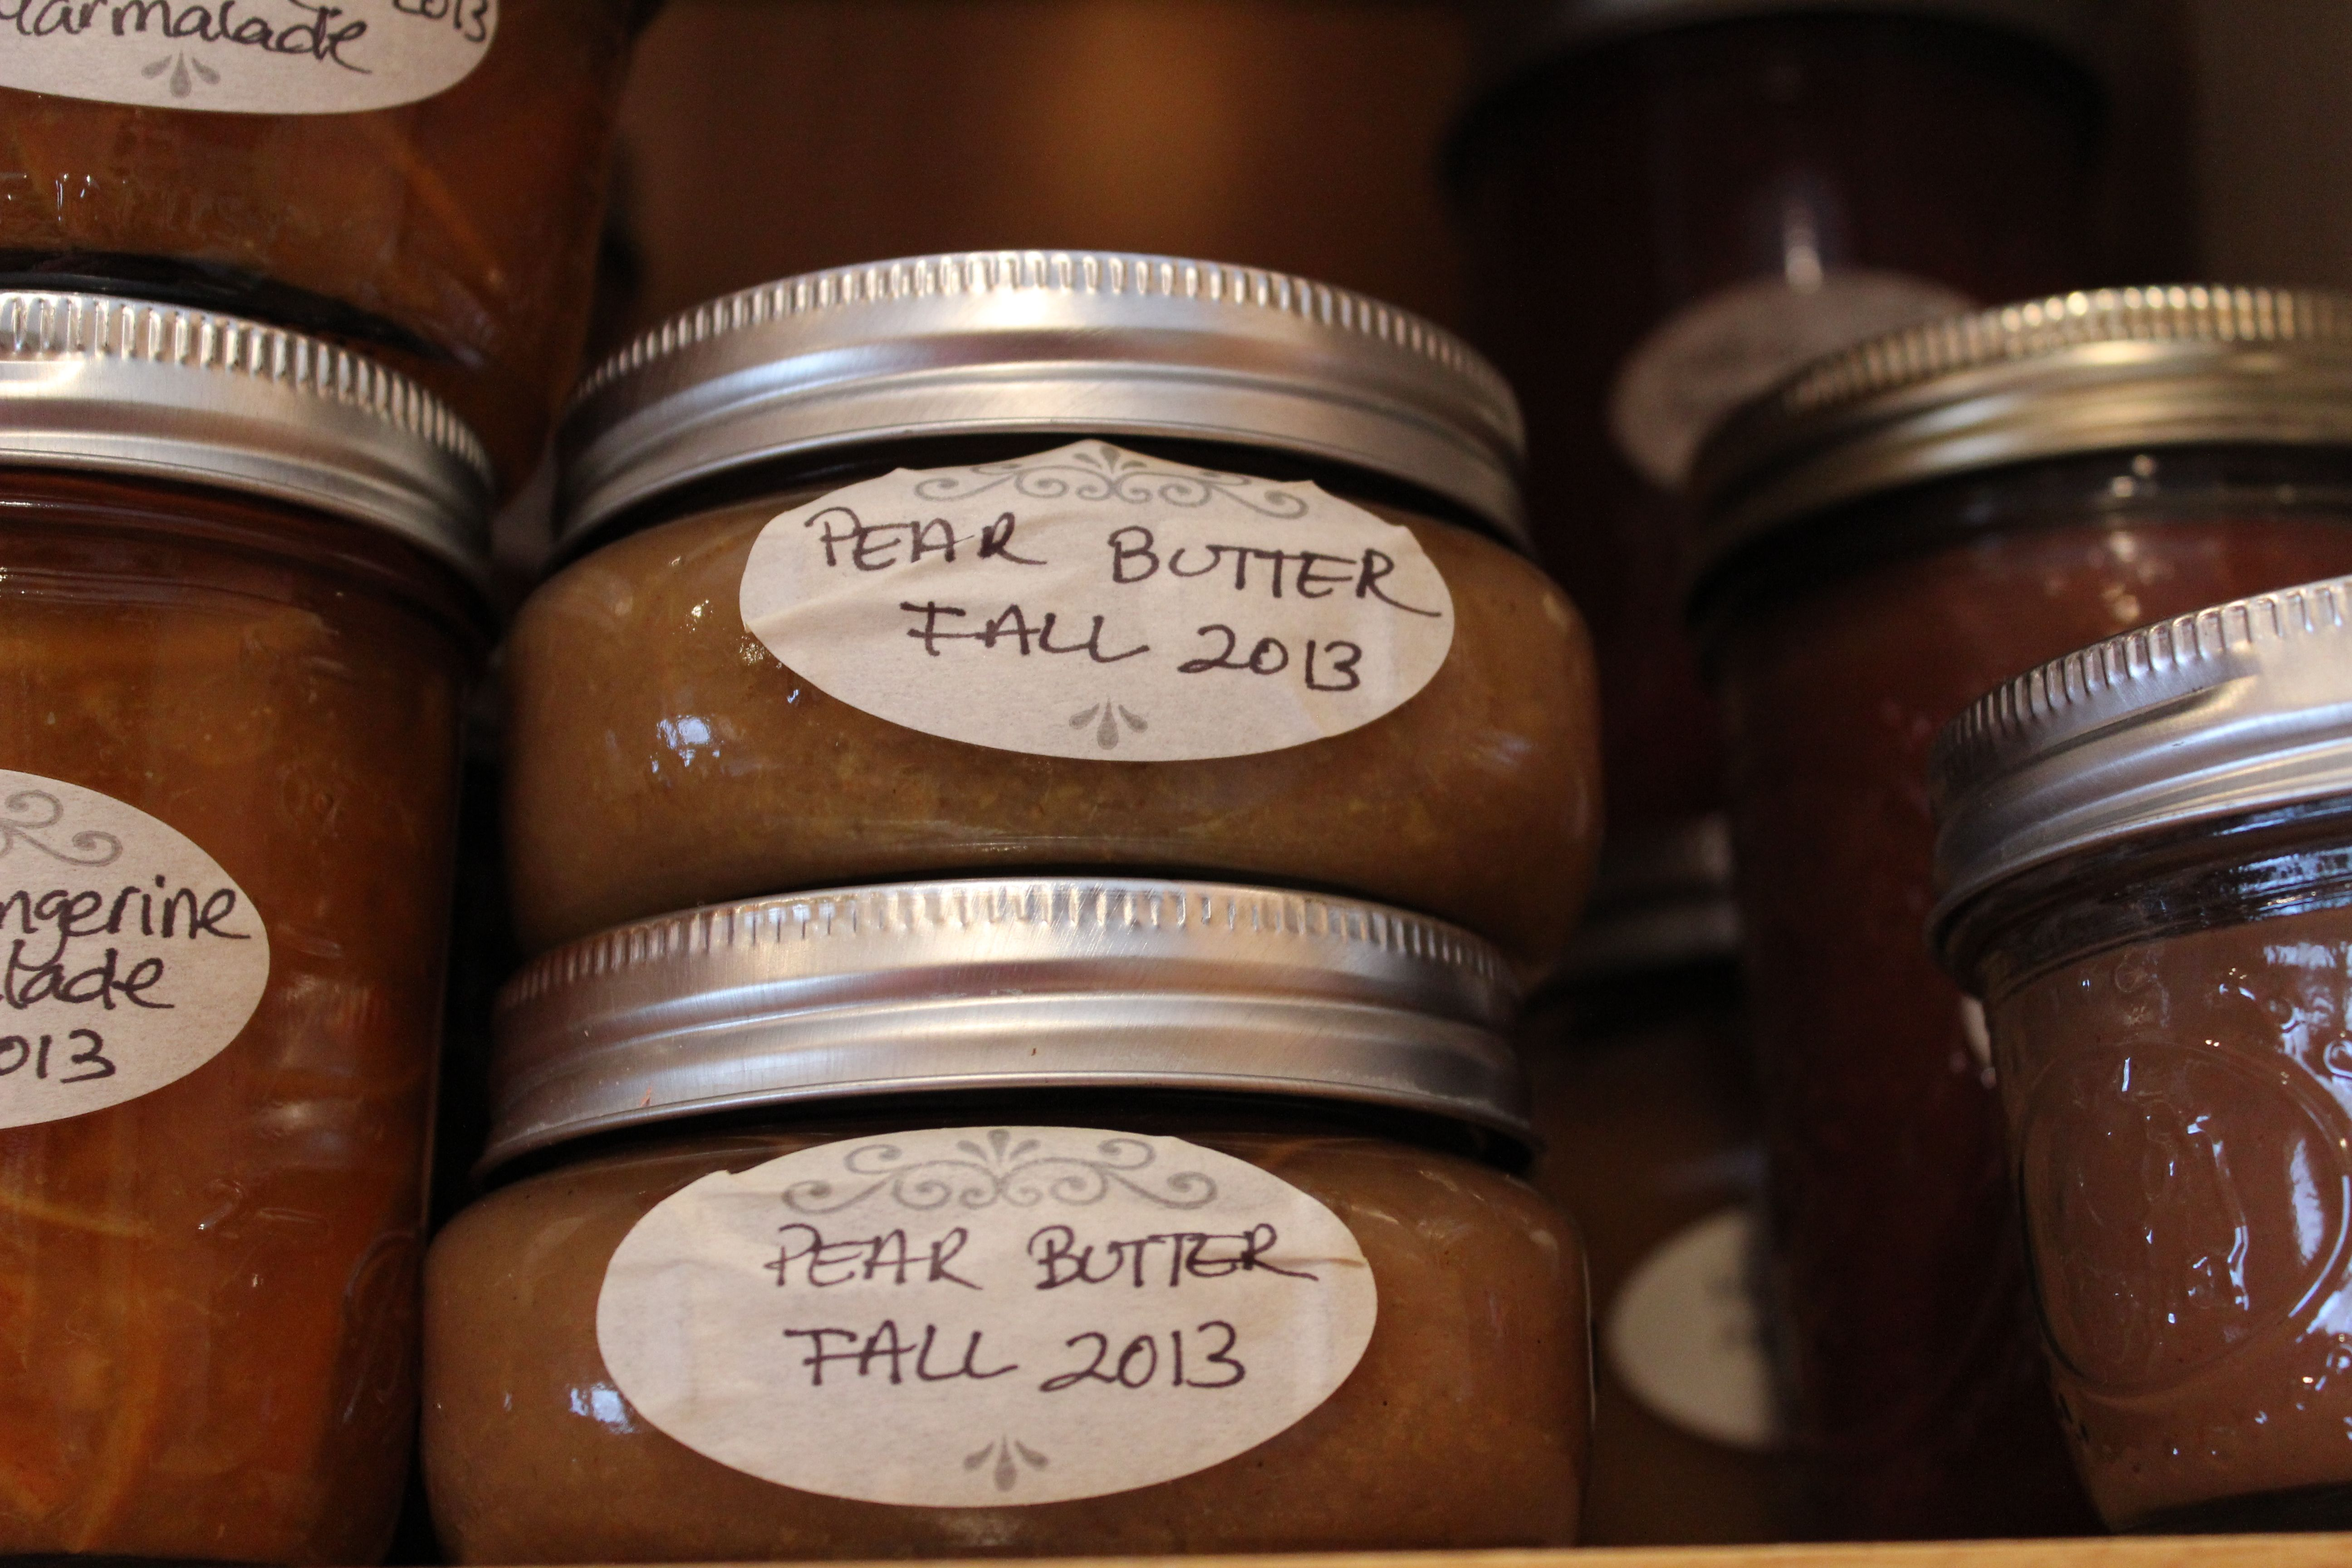 Pics from the 2013 Fall Pantry. I missed canning this year! Maybe I still have time...prepared by Chef Laura Anhalt. Photo by Laura Anhalt